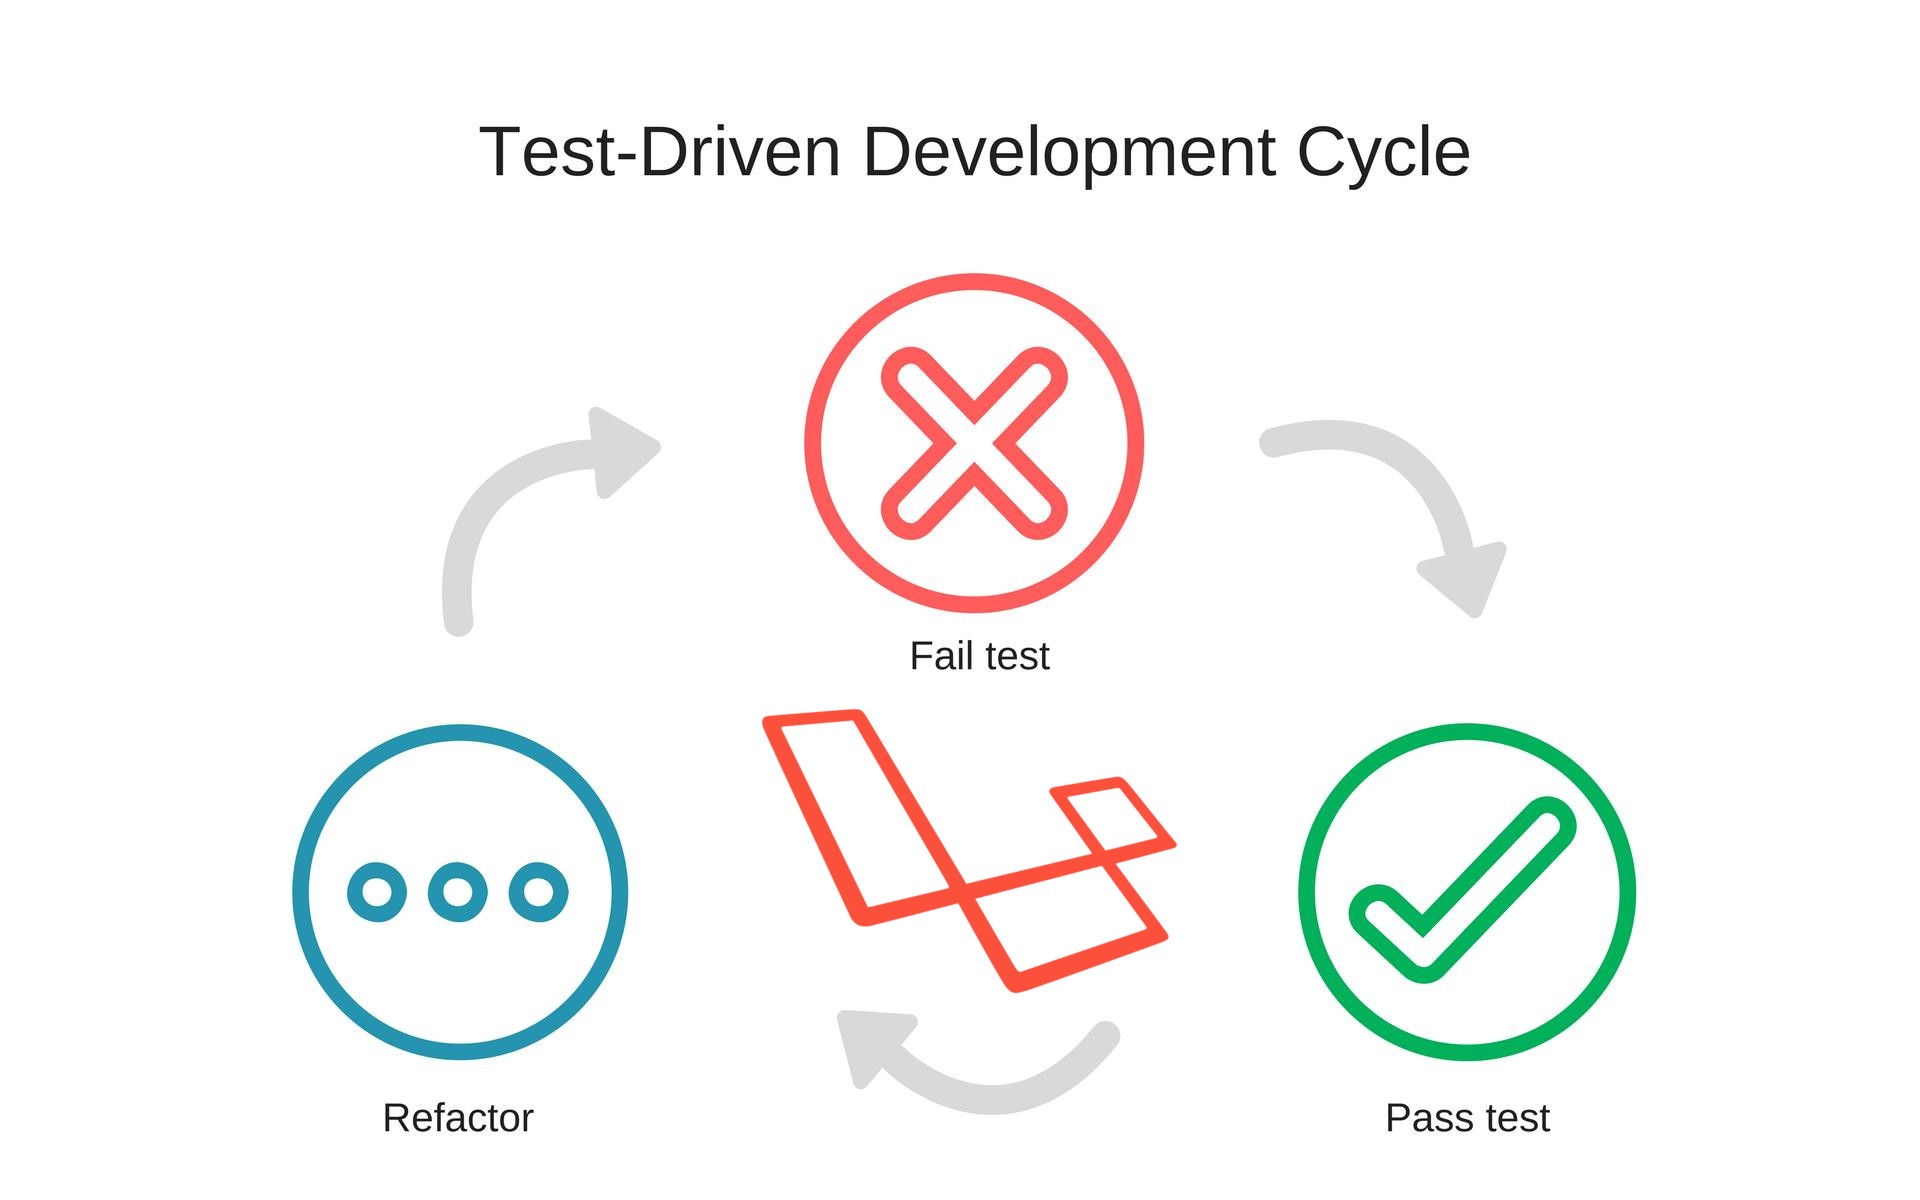 How to build a Laravel REST API with Test-Driven Development